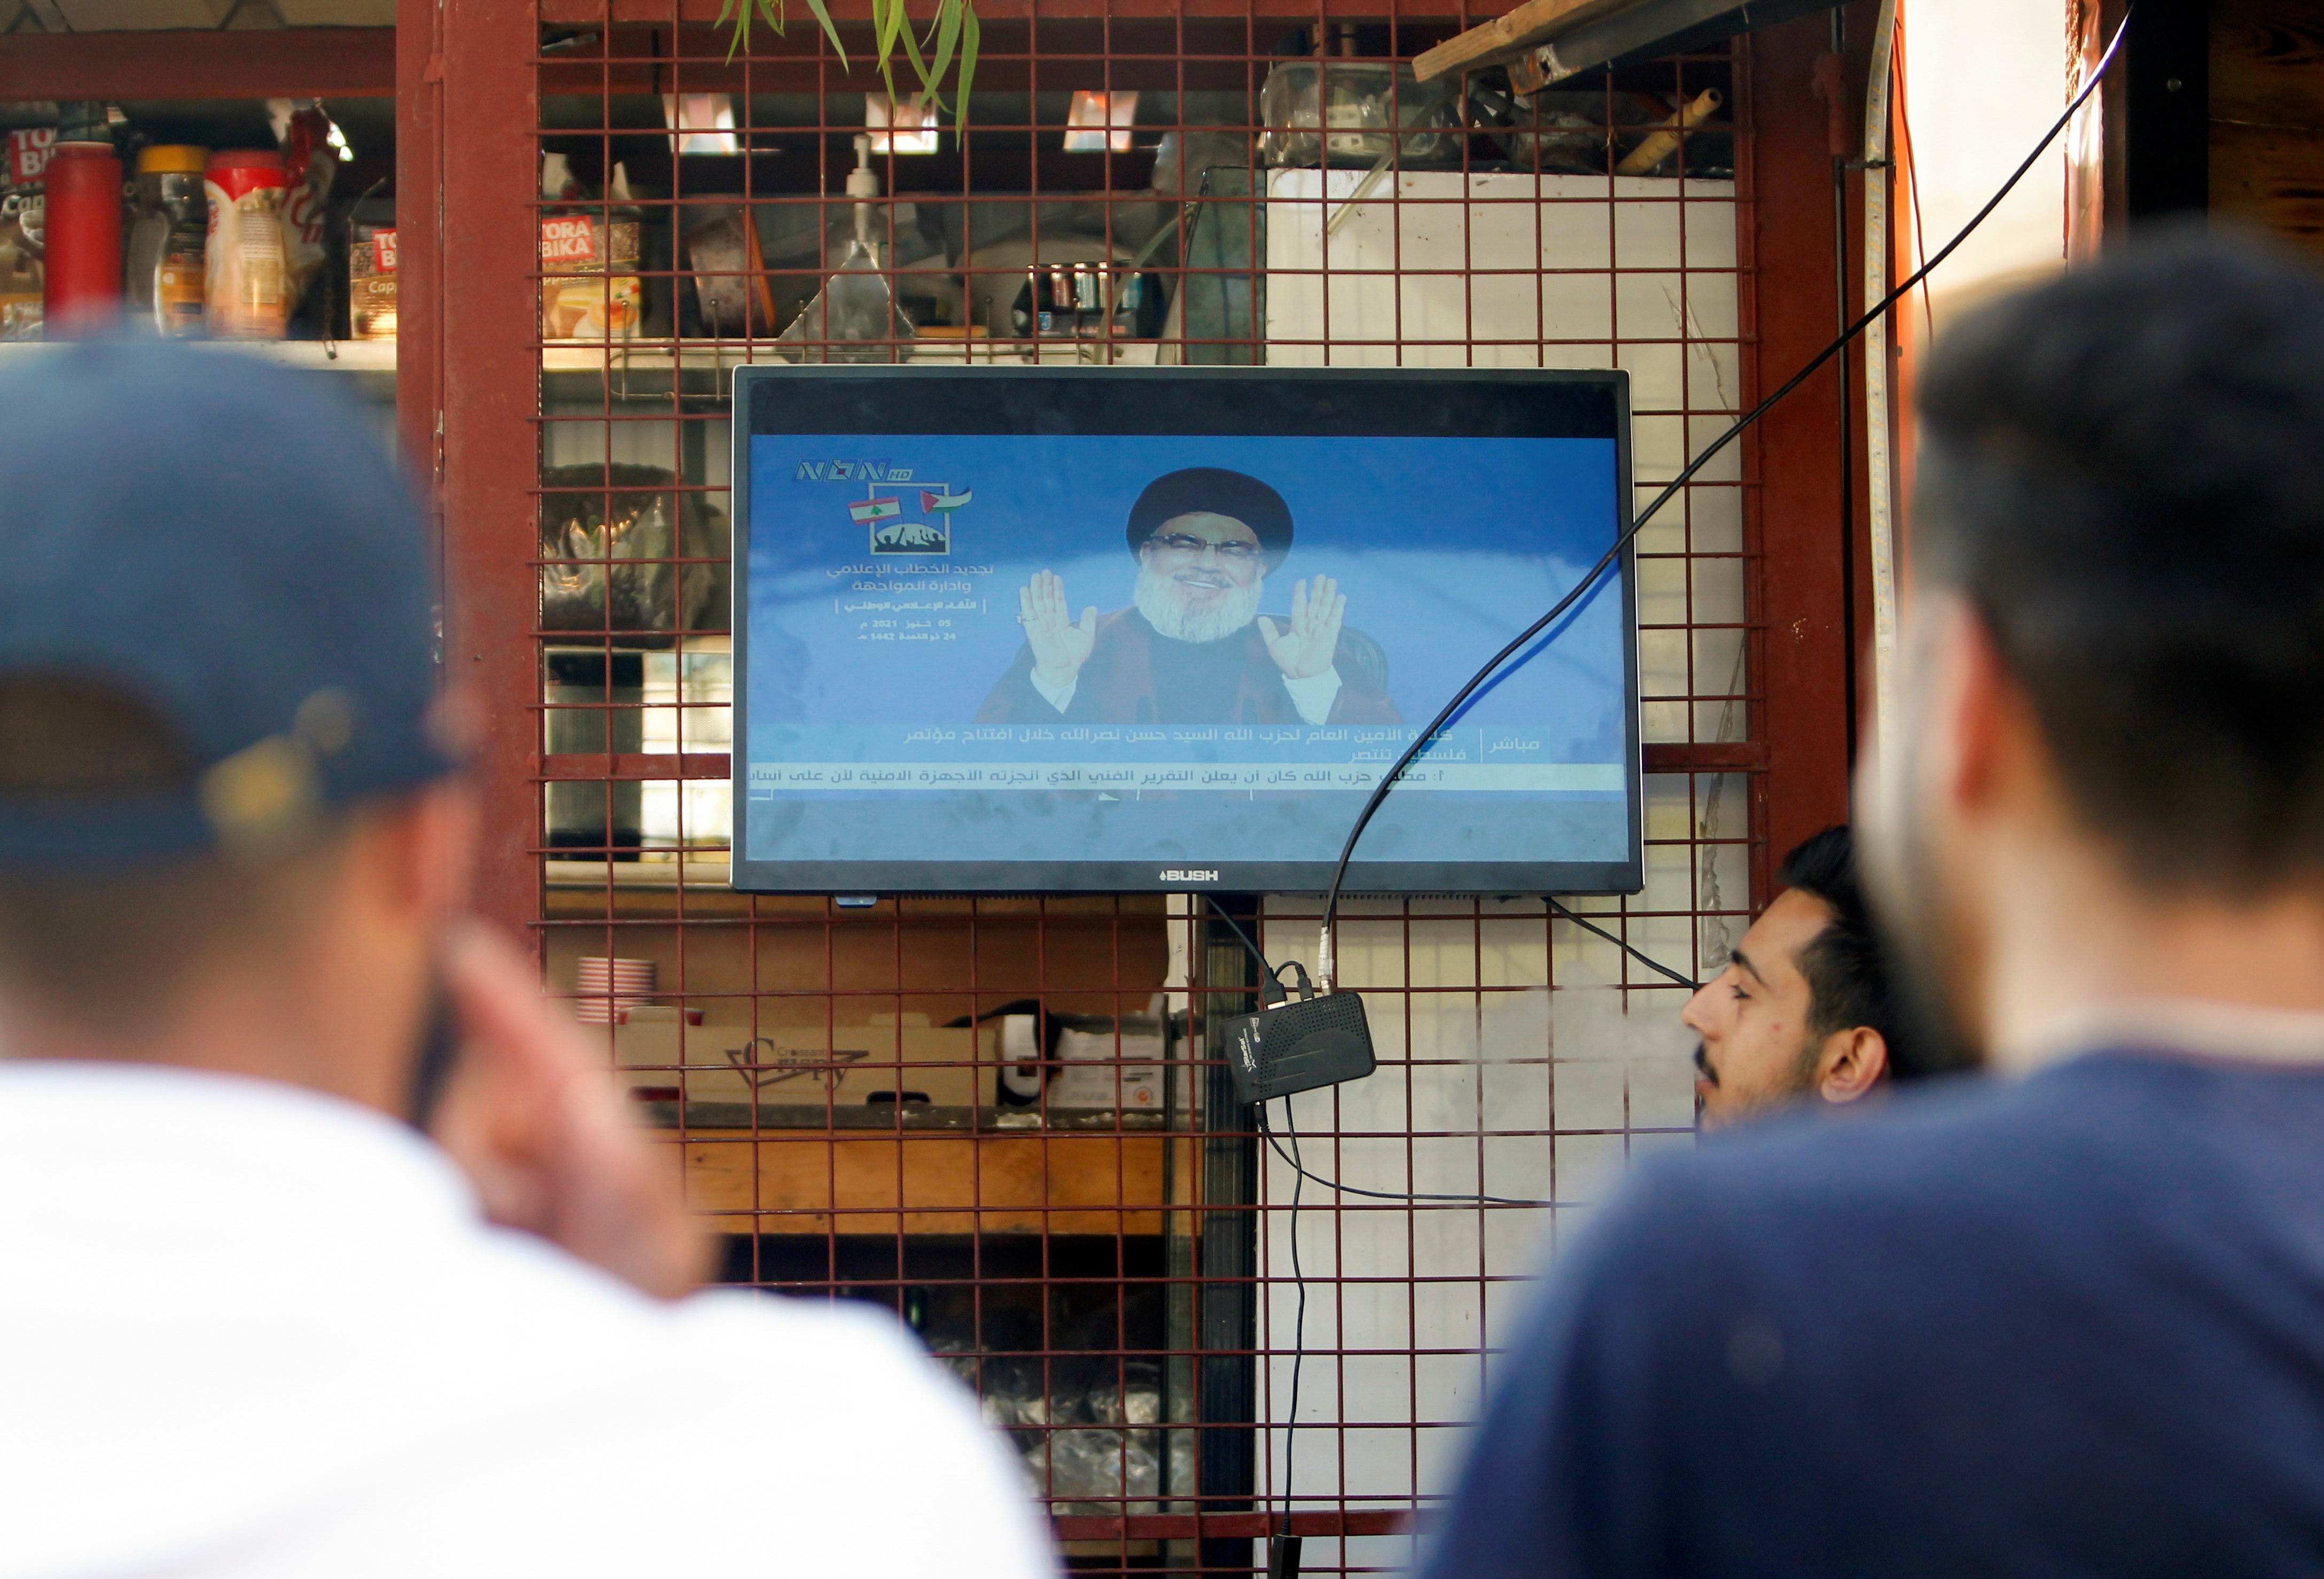 People watch Lebanon's Hezbollah leader Sayyed Hassan Nasrallah speak on television during an event in solidarity with Palestinians, in Houla, Lebanon July 5, 2021. REUTERS/Aziz Taher